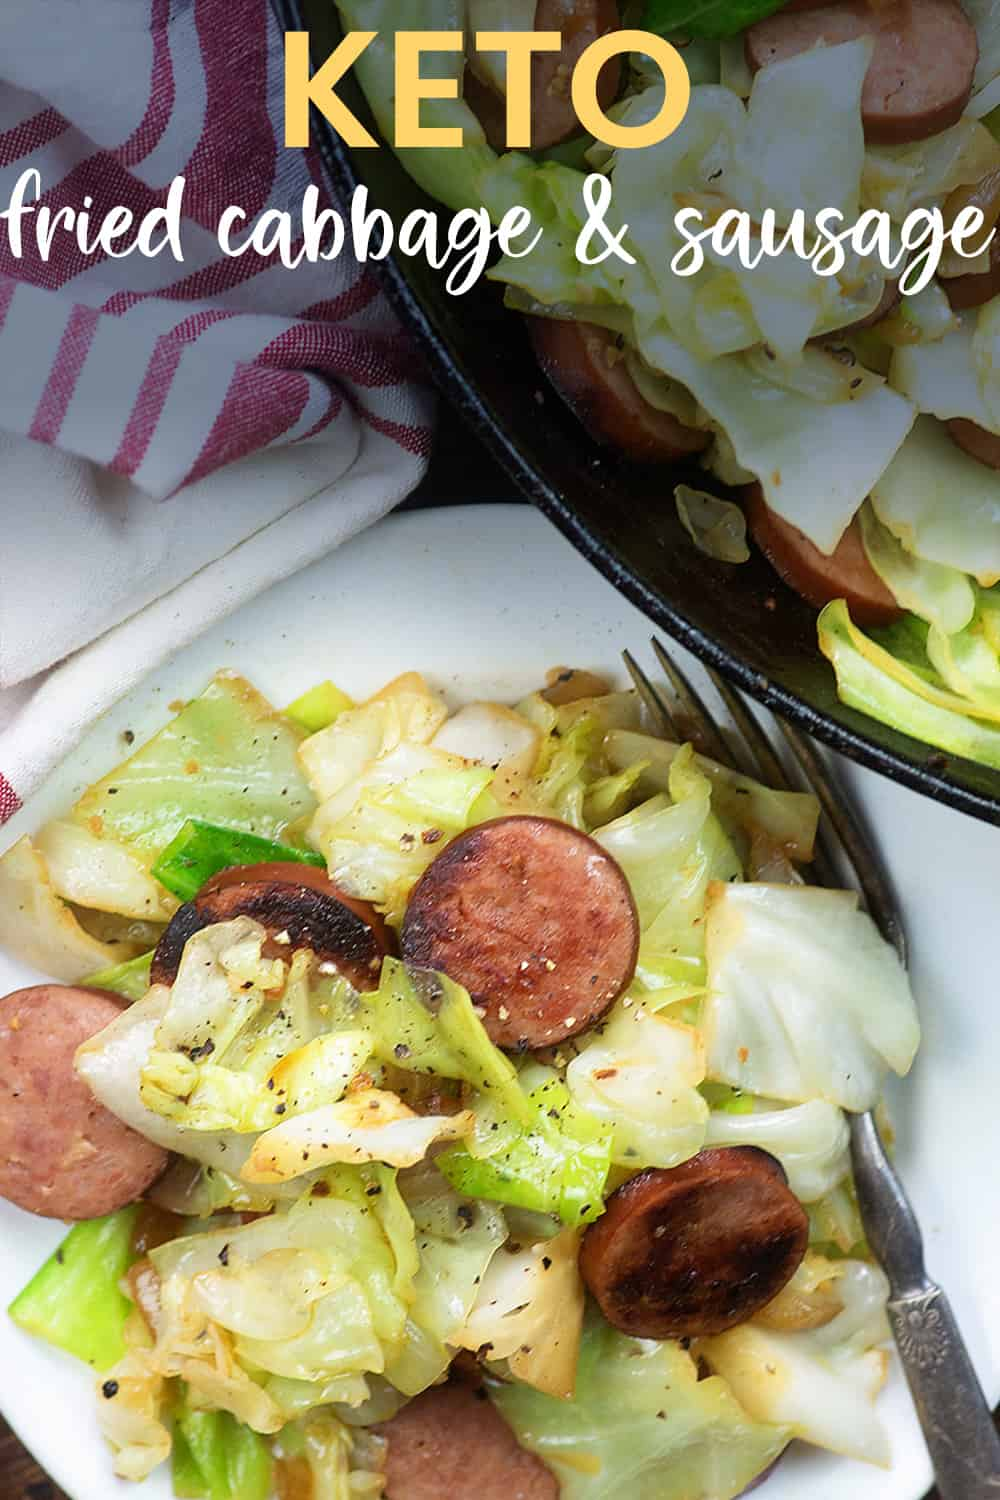 fried cabbage and sausage on white plate with text for Pinterest.